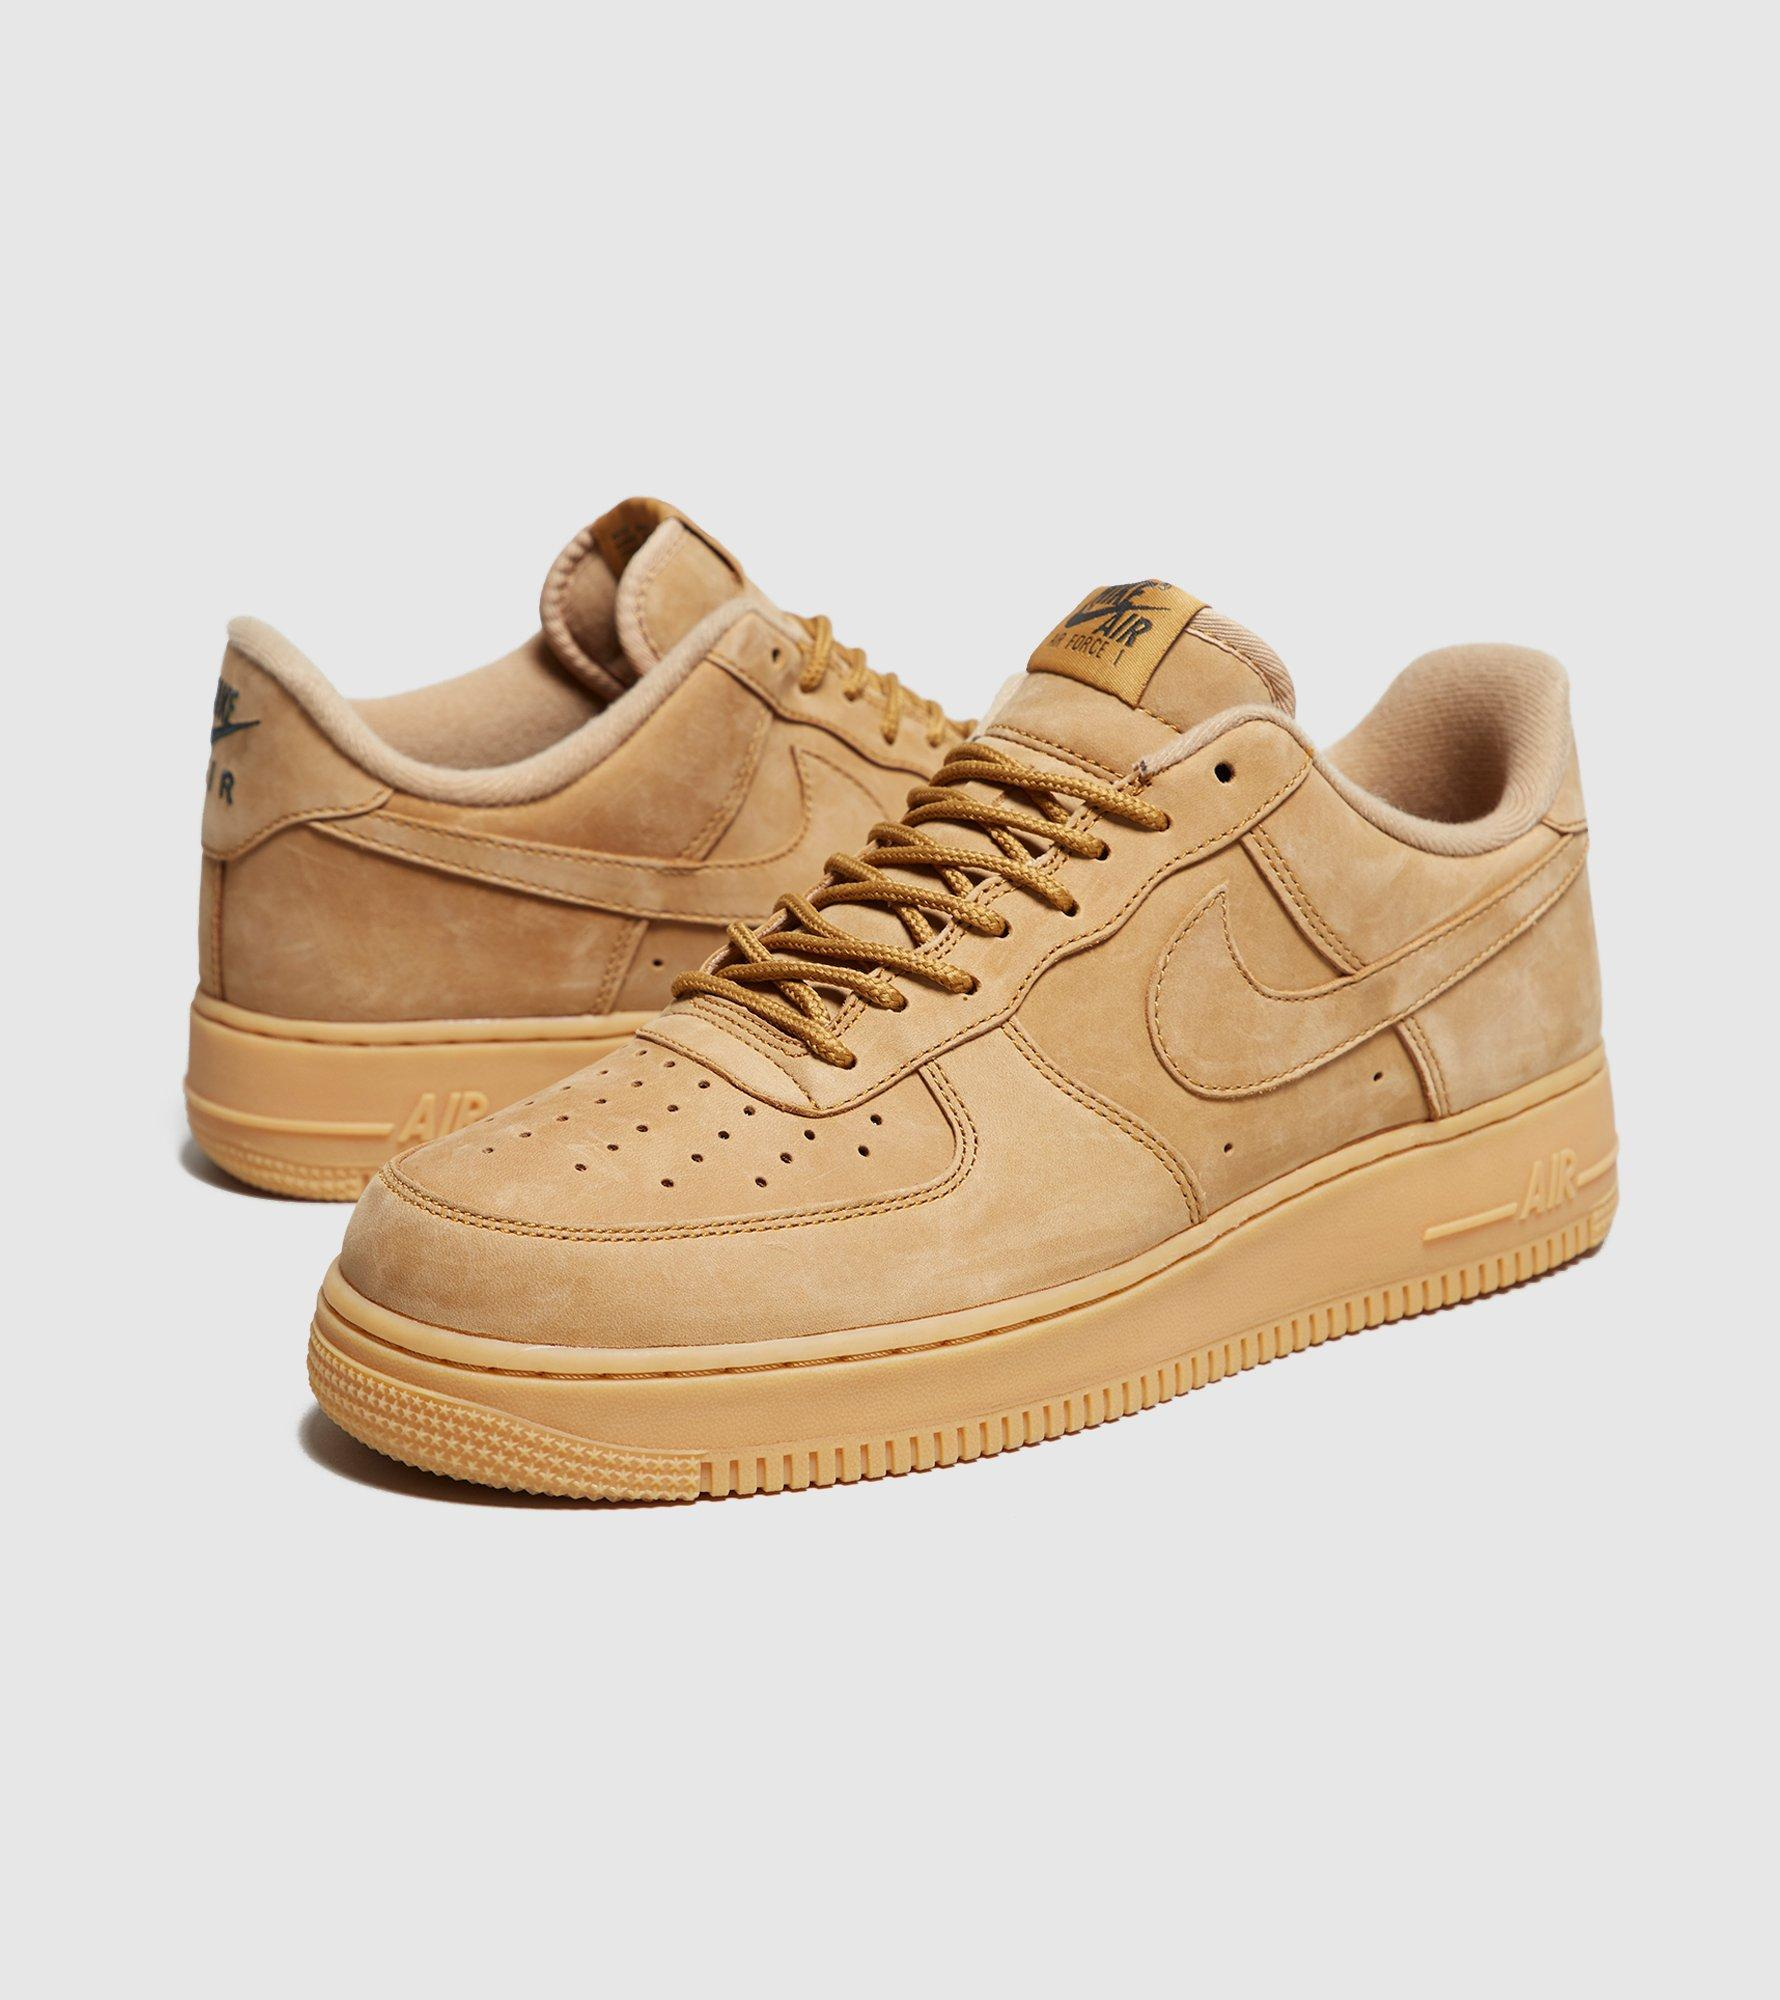 reputable site 92657 c3eed Mens Air Force 1 Lv8 ... Nike ...